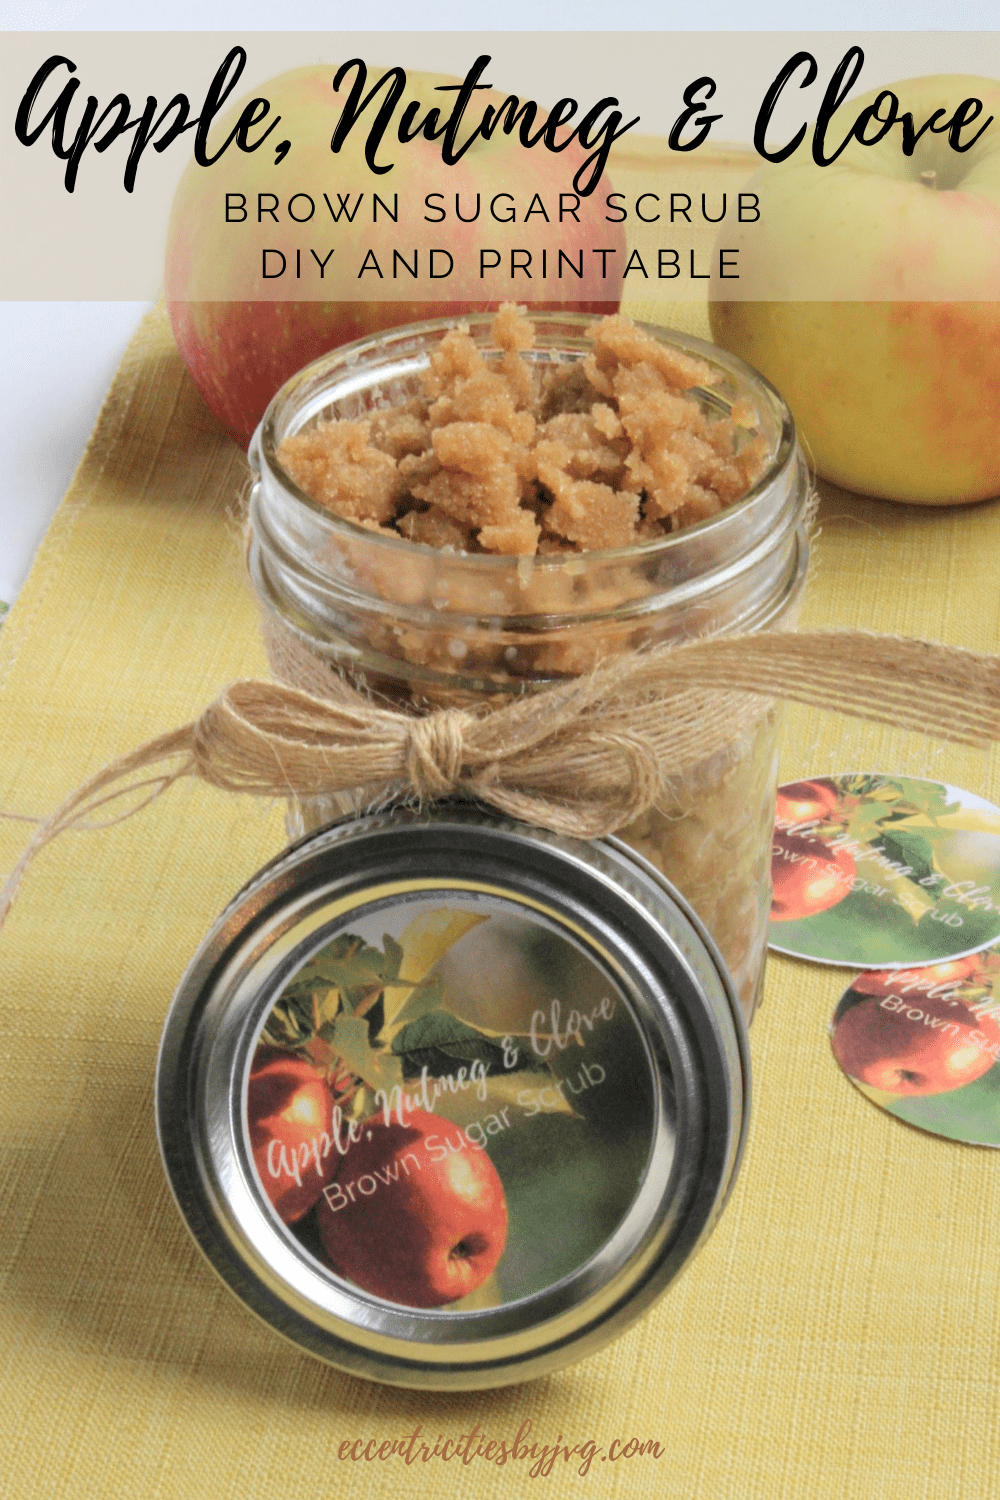 Apple, Nutmeg and Clove sugar scrub